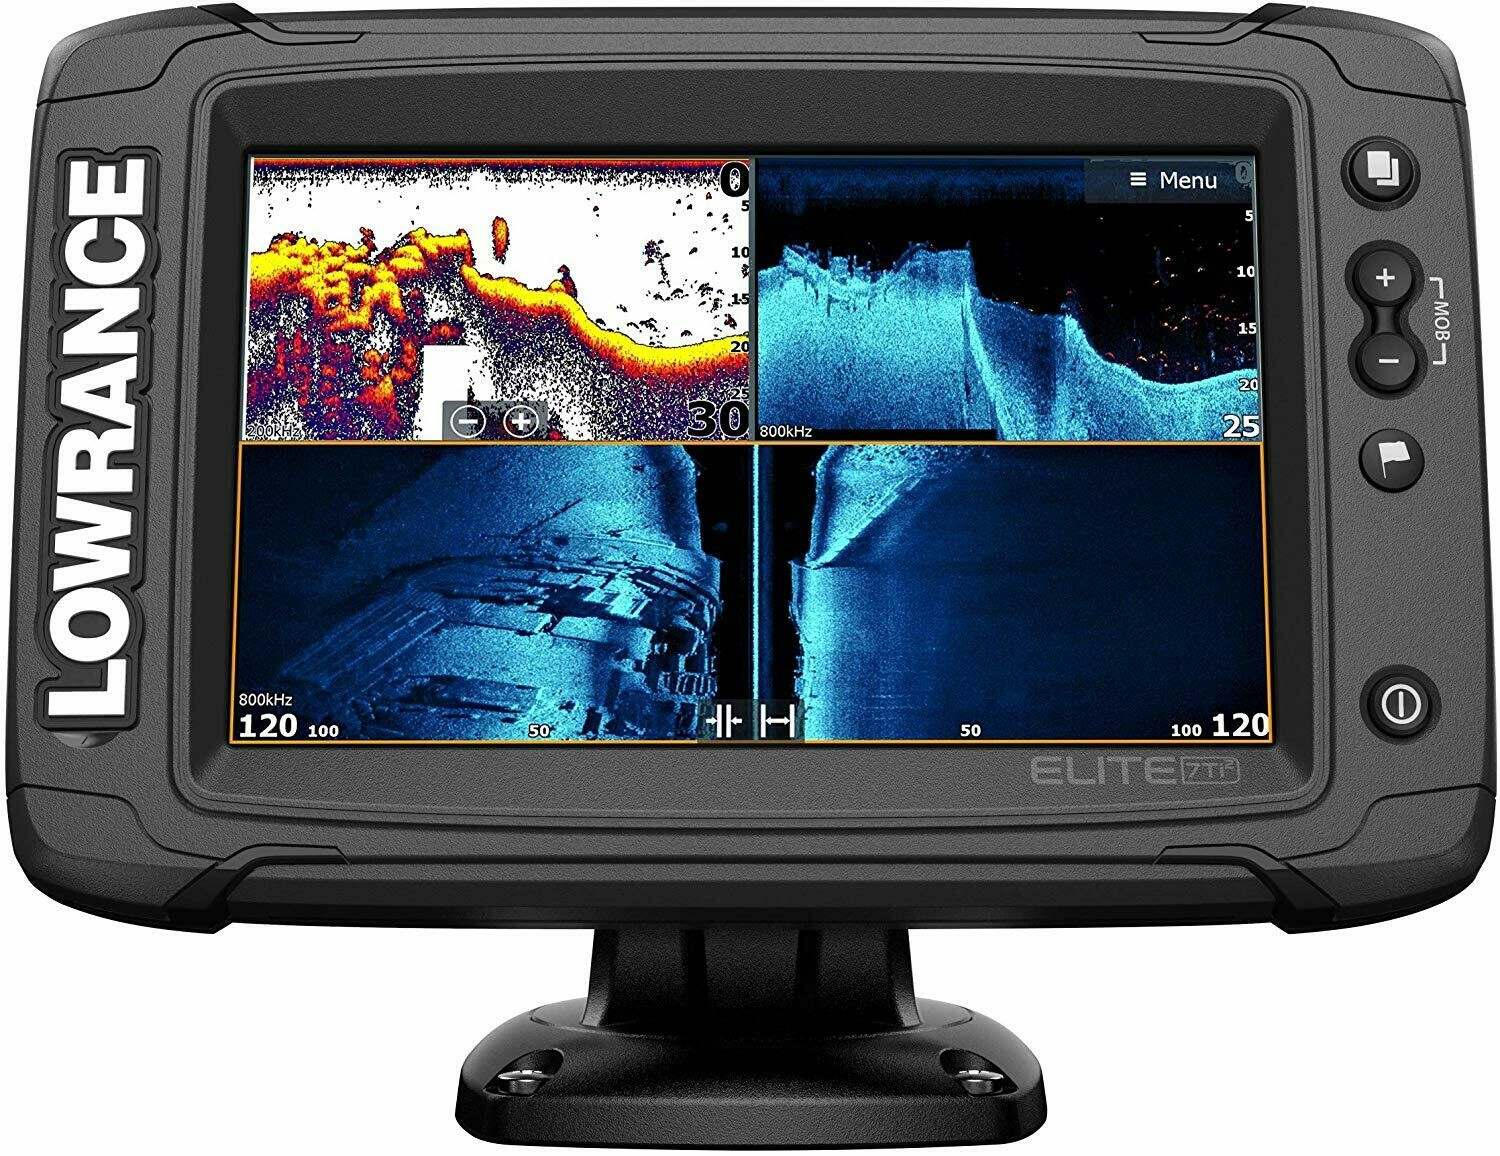 Elite- 7 Ti² with Active Imaging 3-in-1 (ROW)